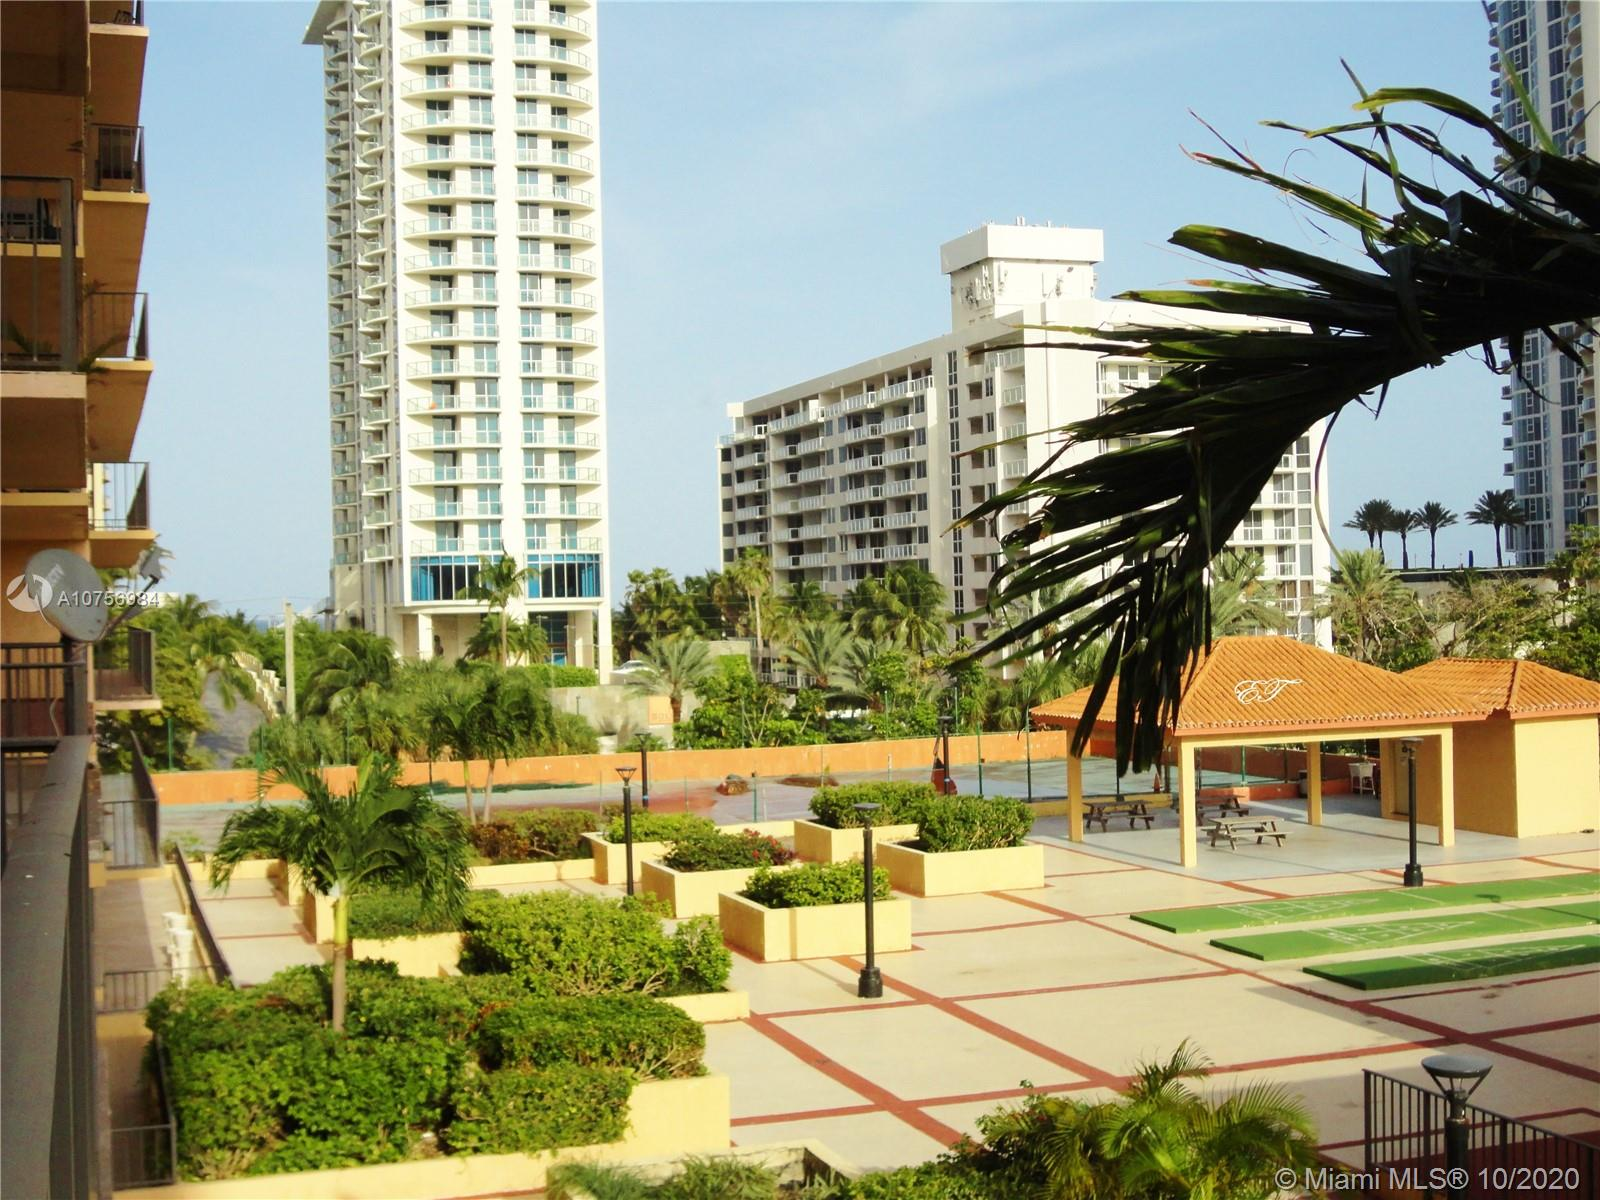 210  174 ST. #504 For Sale A10756984, FL